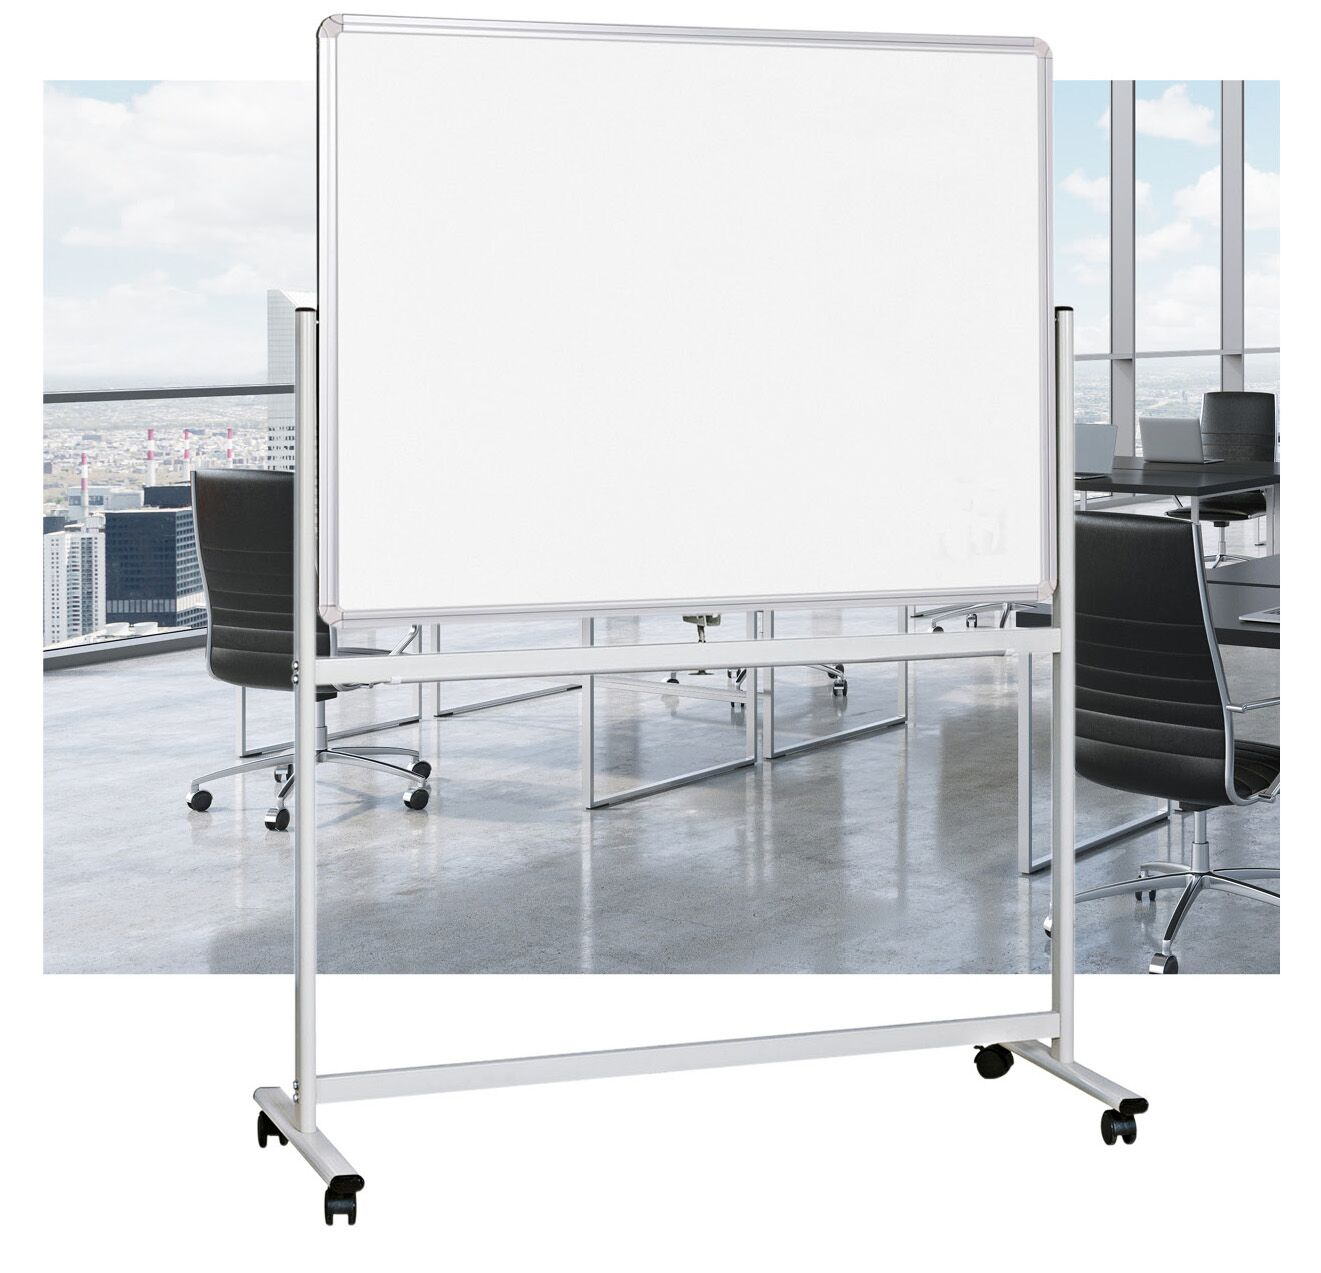 Double Sided Mobile Pivoting WhiteBoard